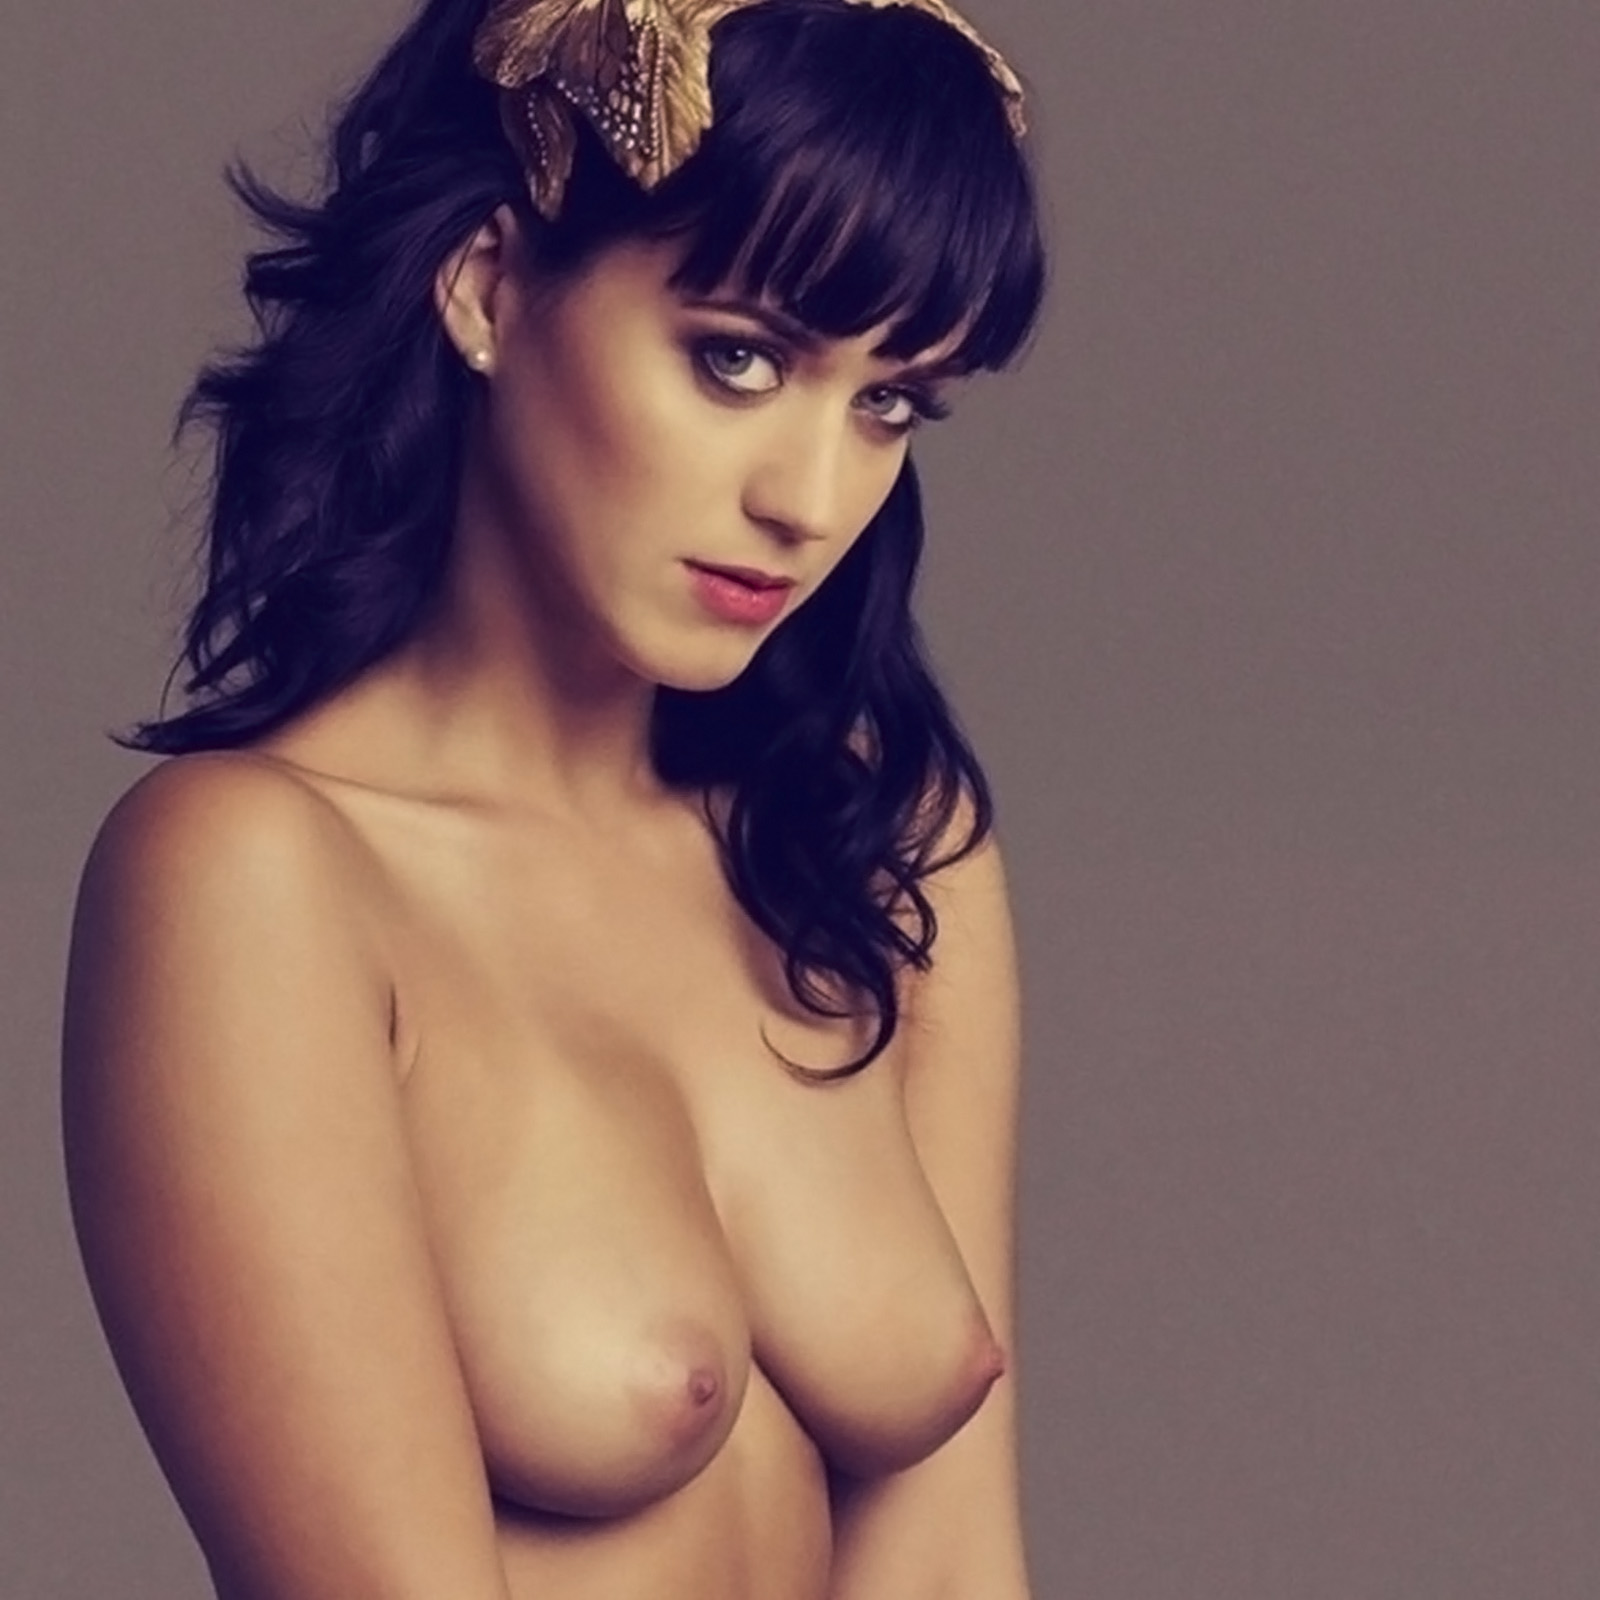 Sex Nude Katy Perry